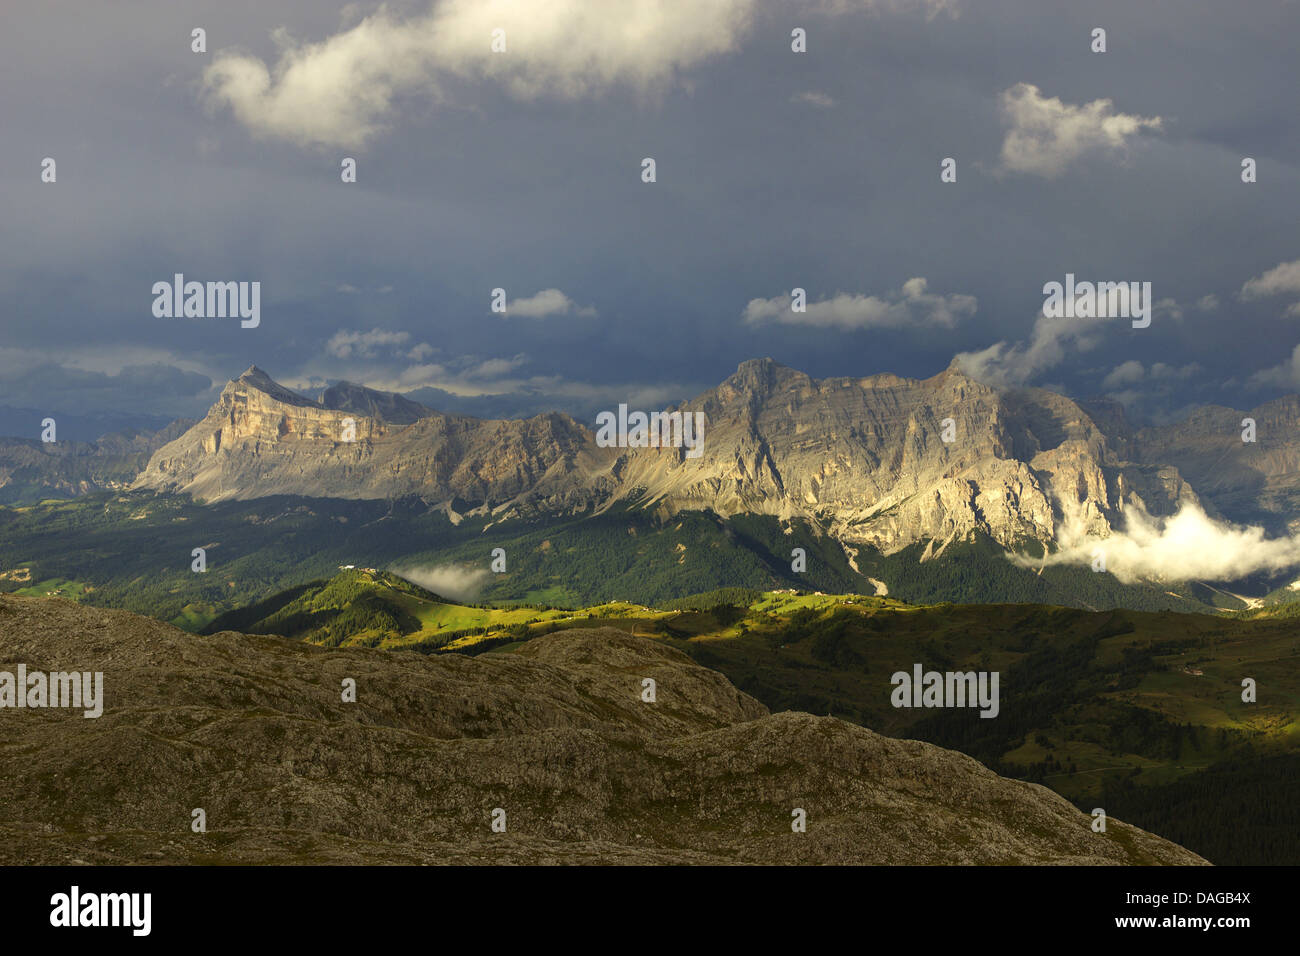 view from Sella group to Fanes group after thunderstorm in evening light, Italy, Dolomites Stock Photo